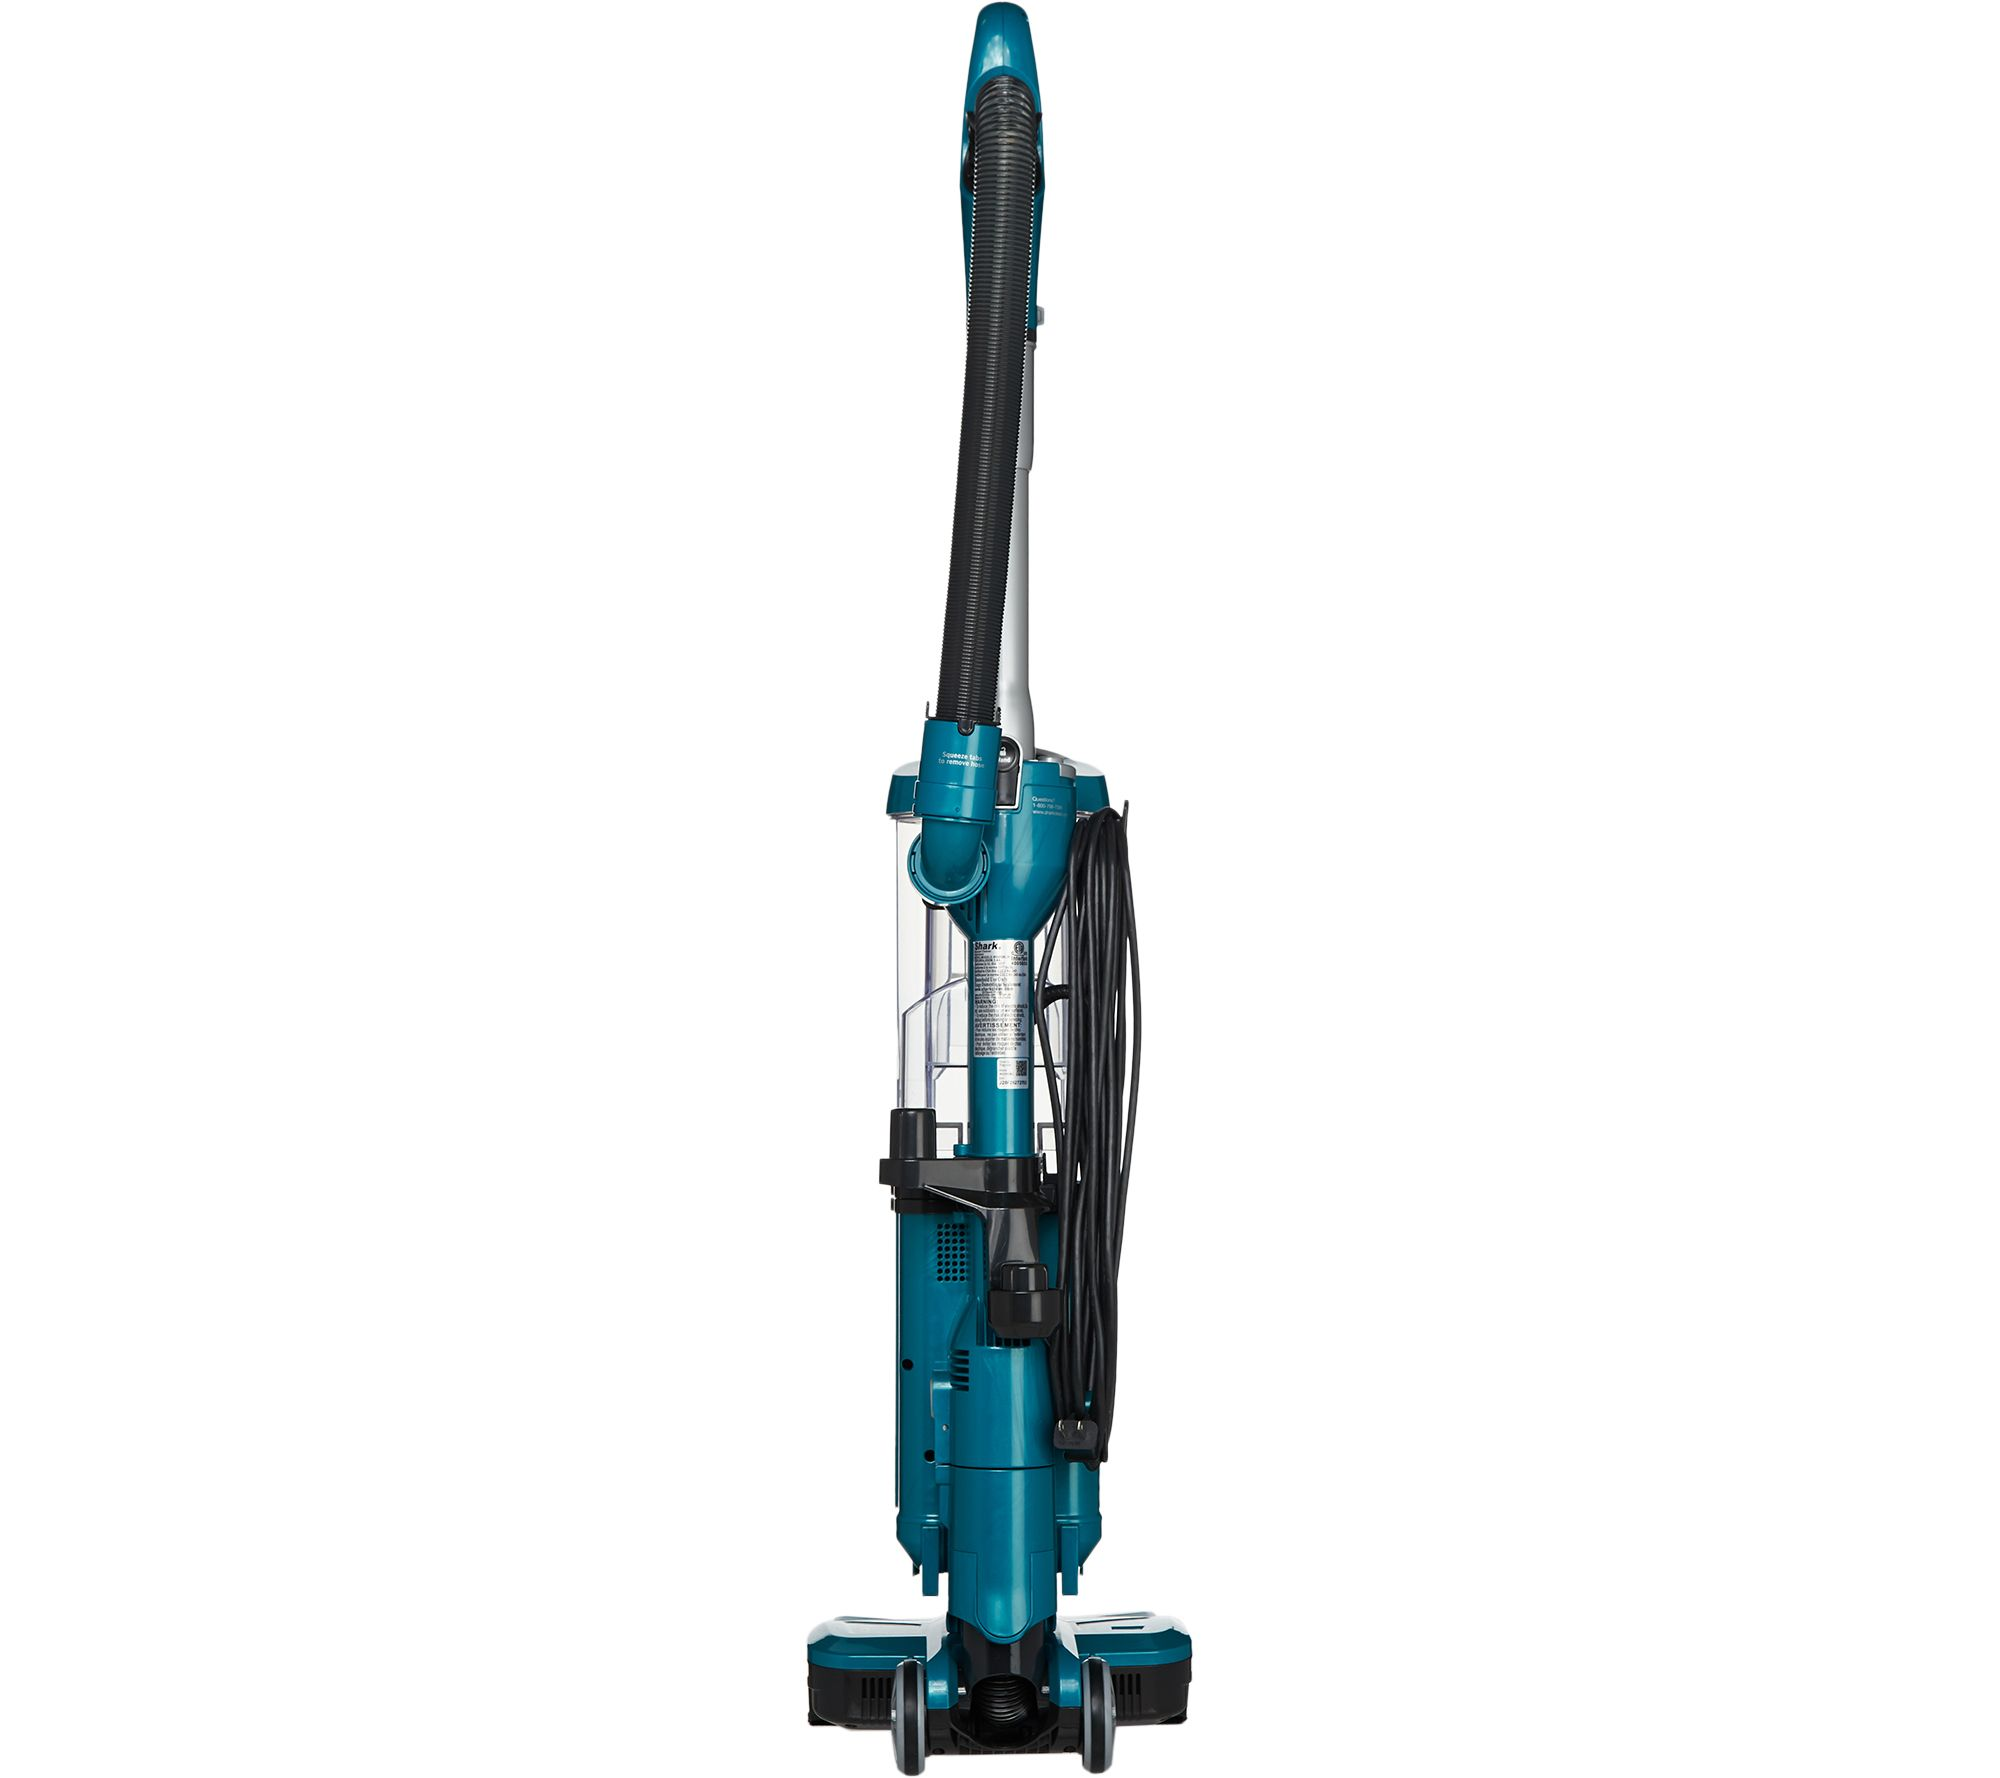 Shark navigator vacuum cleaner big w - Shark Duoclean Slim Upright Vacuum W 6 Cleaning Tool Attachment Page 1 Qvc Com